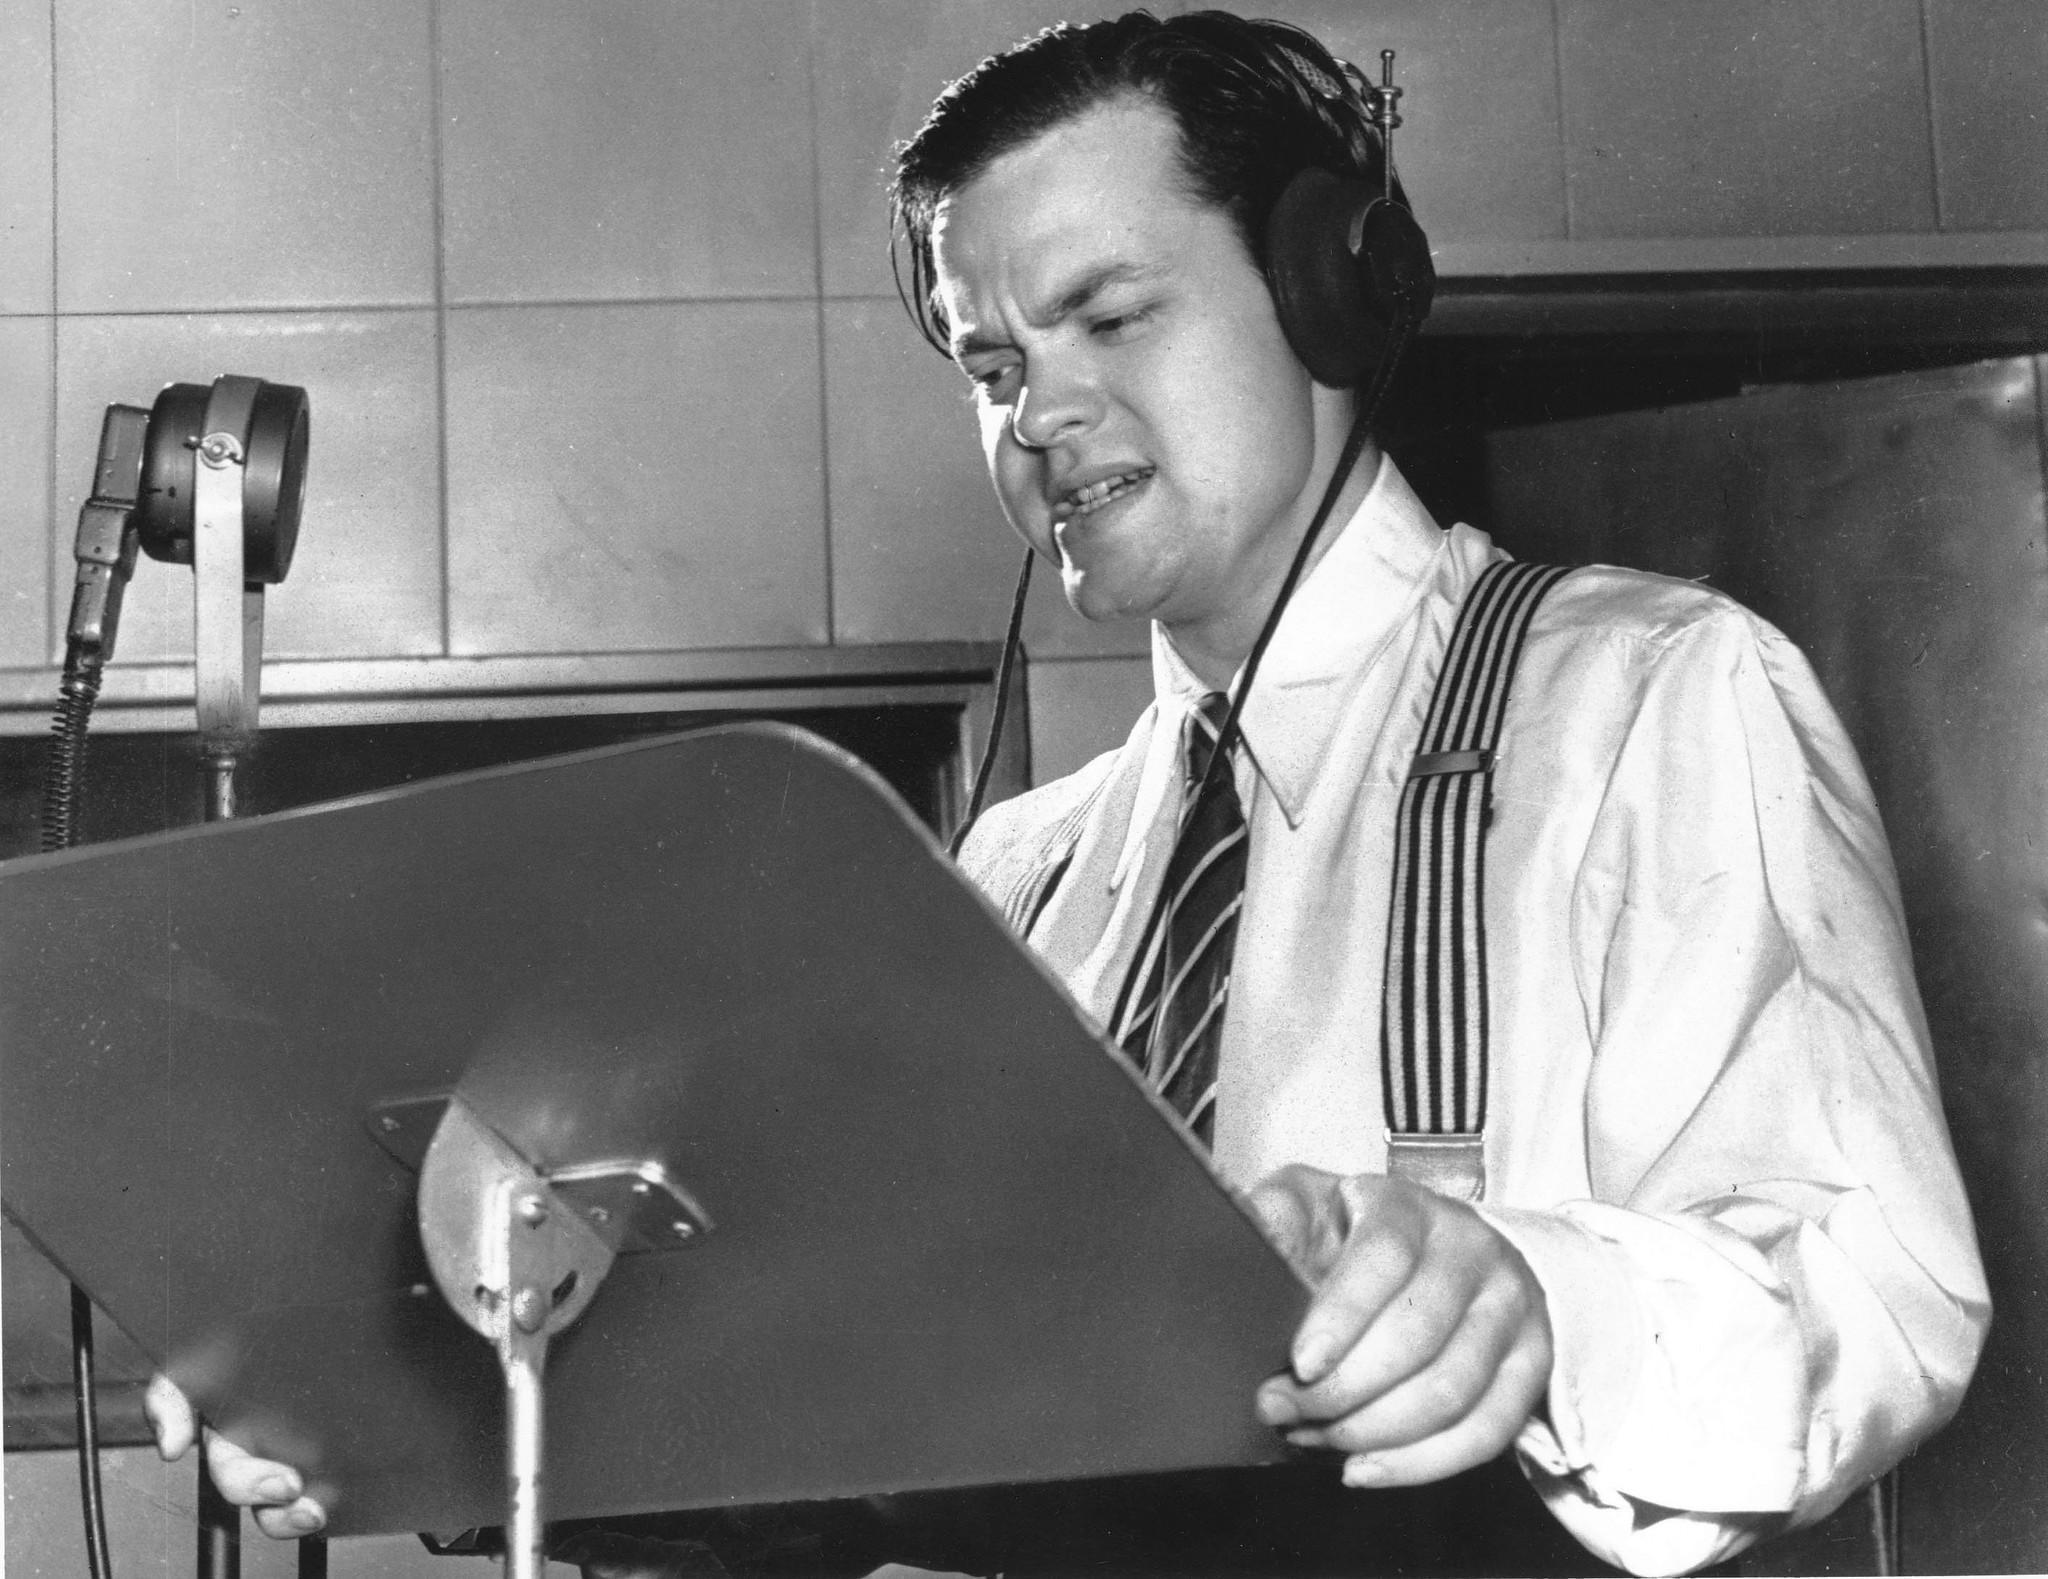 Wisconsin hometown to celebrate Orson Welles' 100th birthday